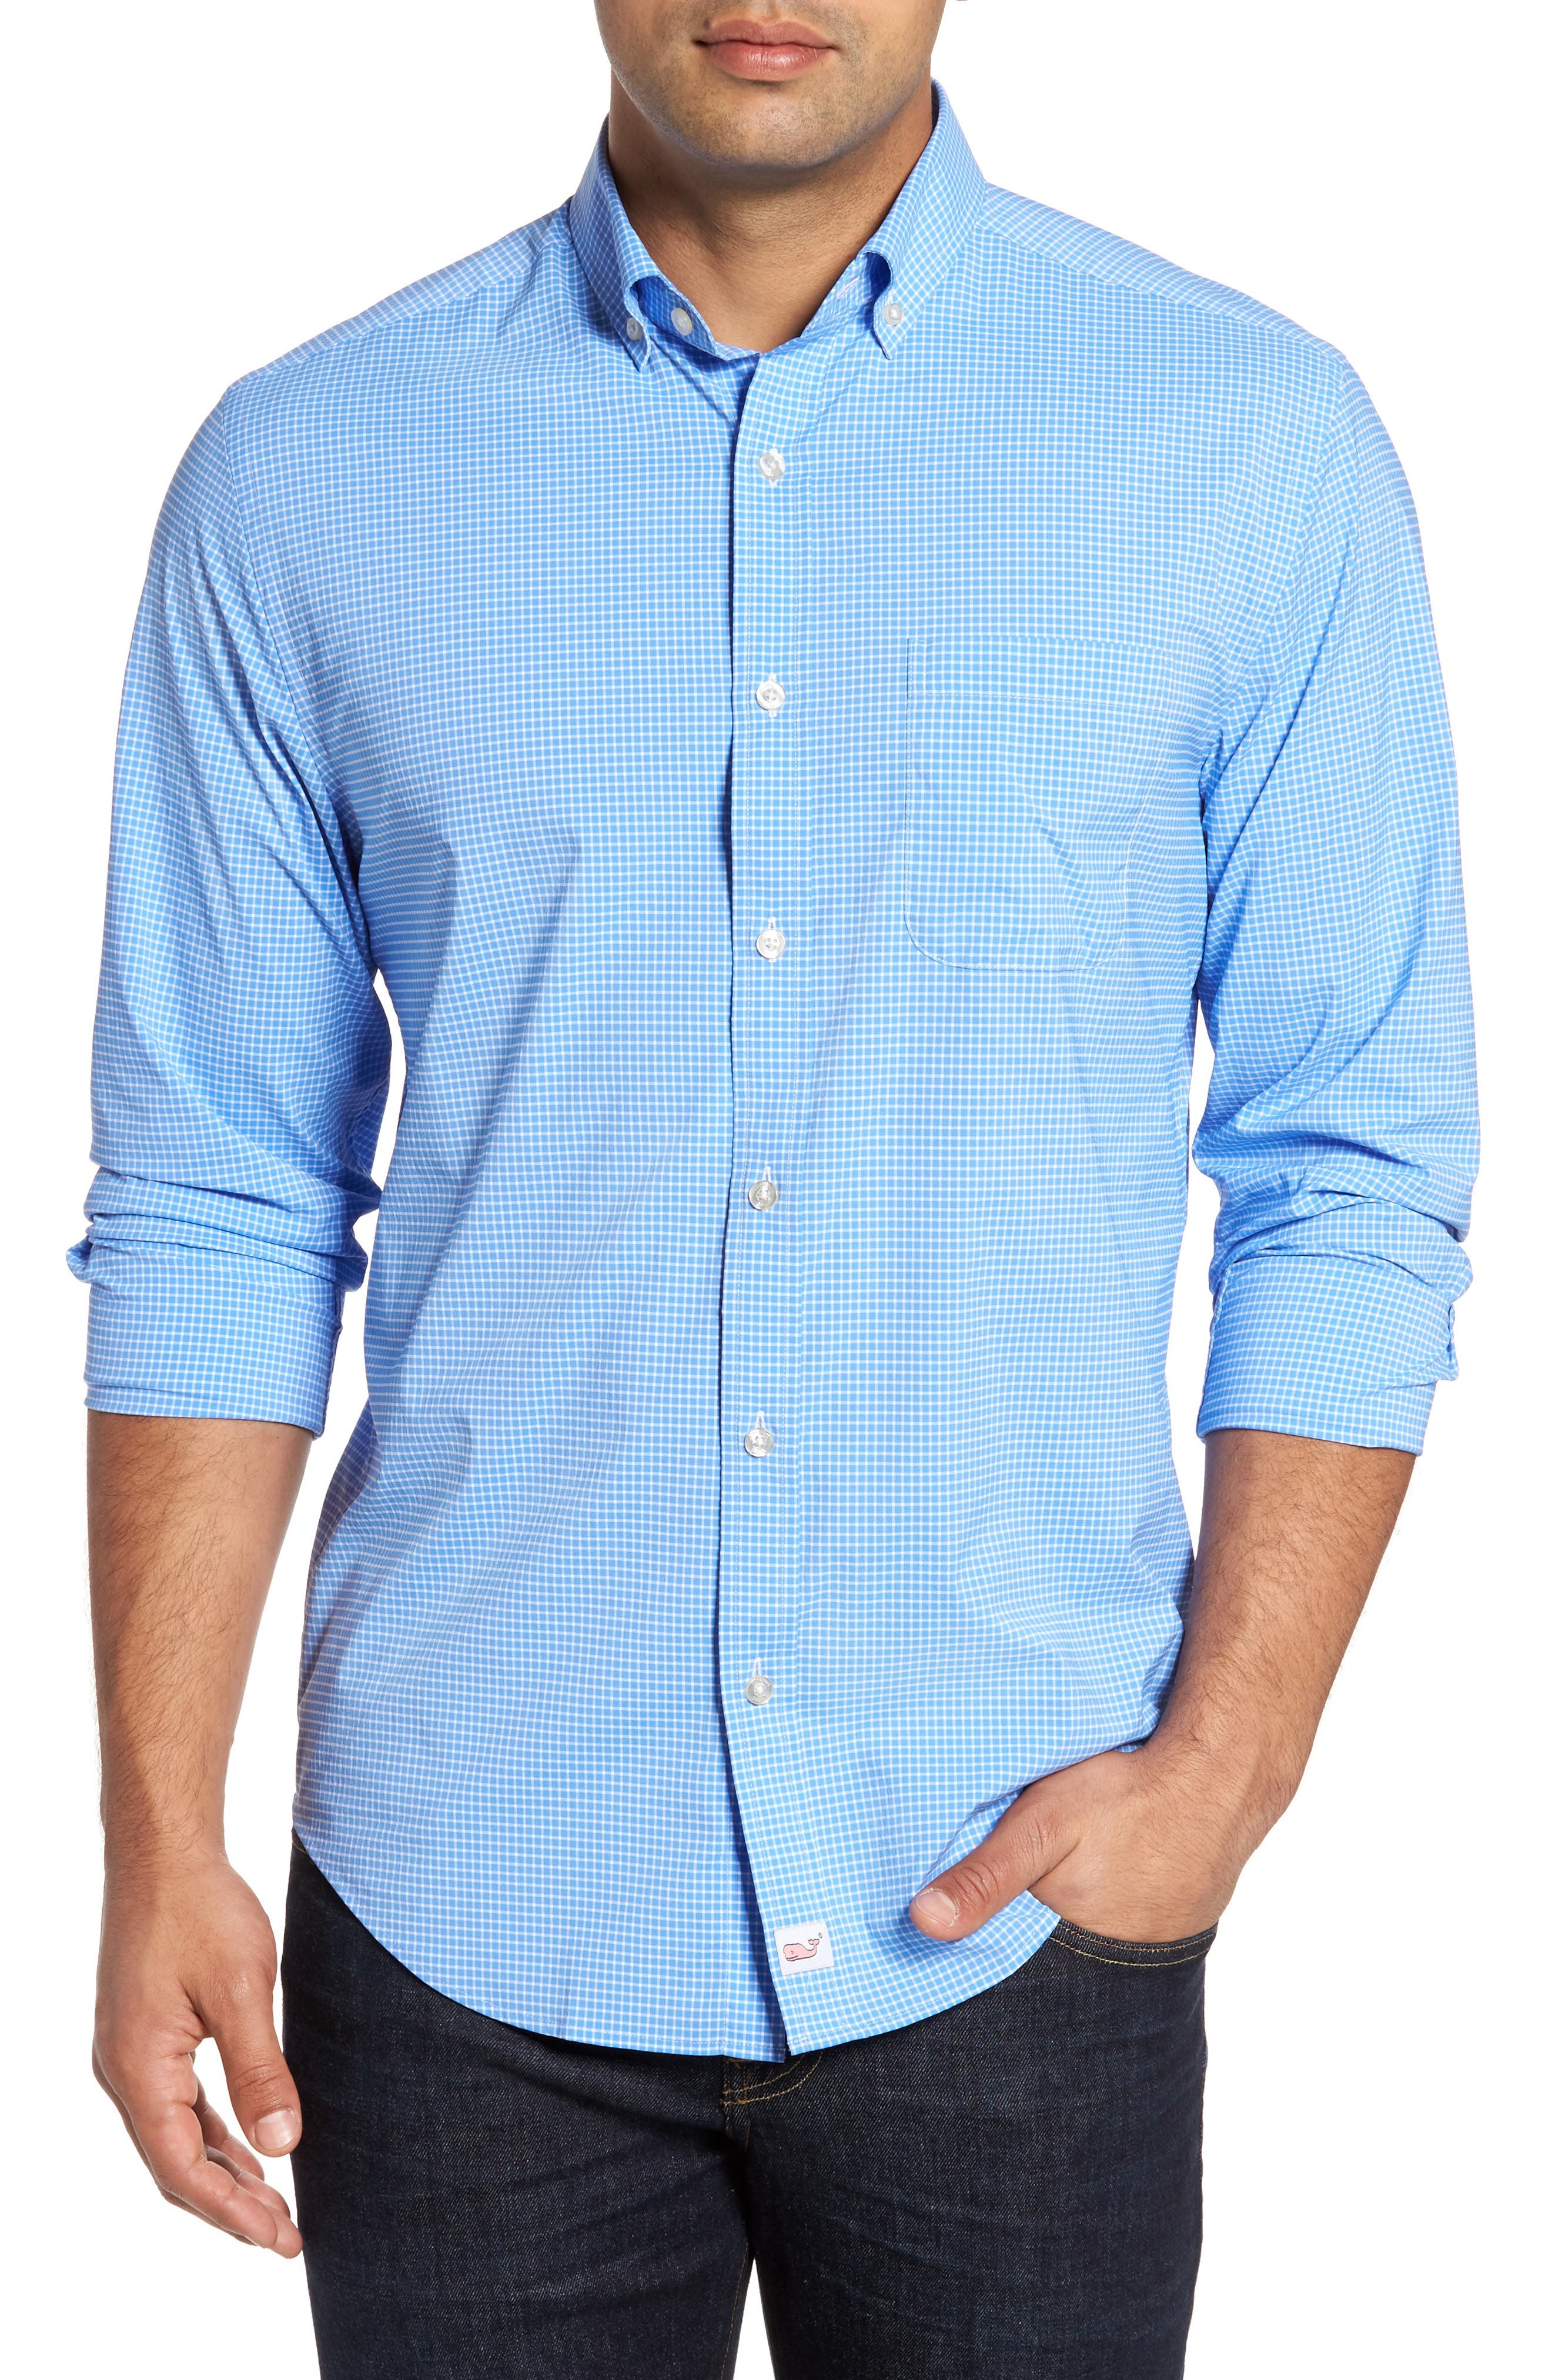 Alternate Image 1 Selected - vineyard vines Anchor Row Classic Fit Check Sport Shirt